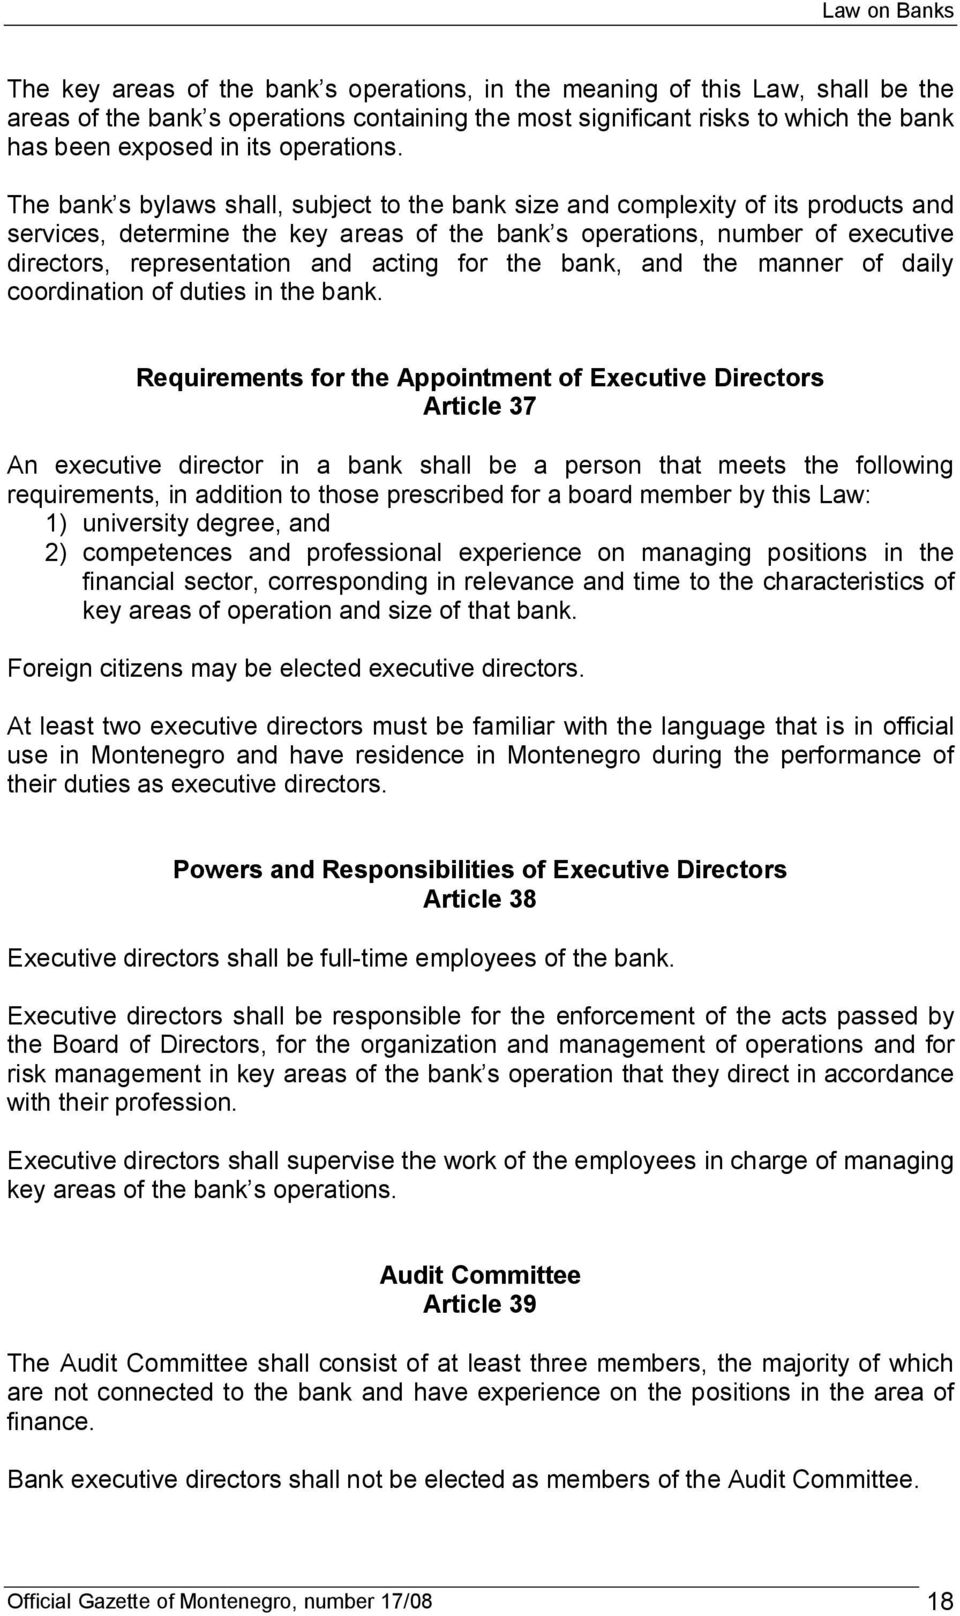 The bank s bylaws shall, subject to the bank size and complexity of its products and services, determine the key areas of the bank s operations, number of executive directors, representation and